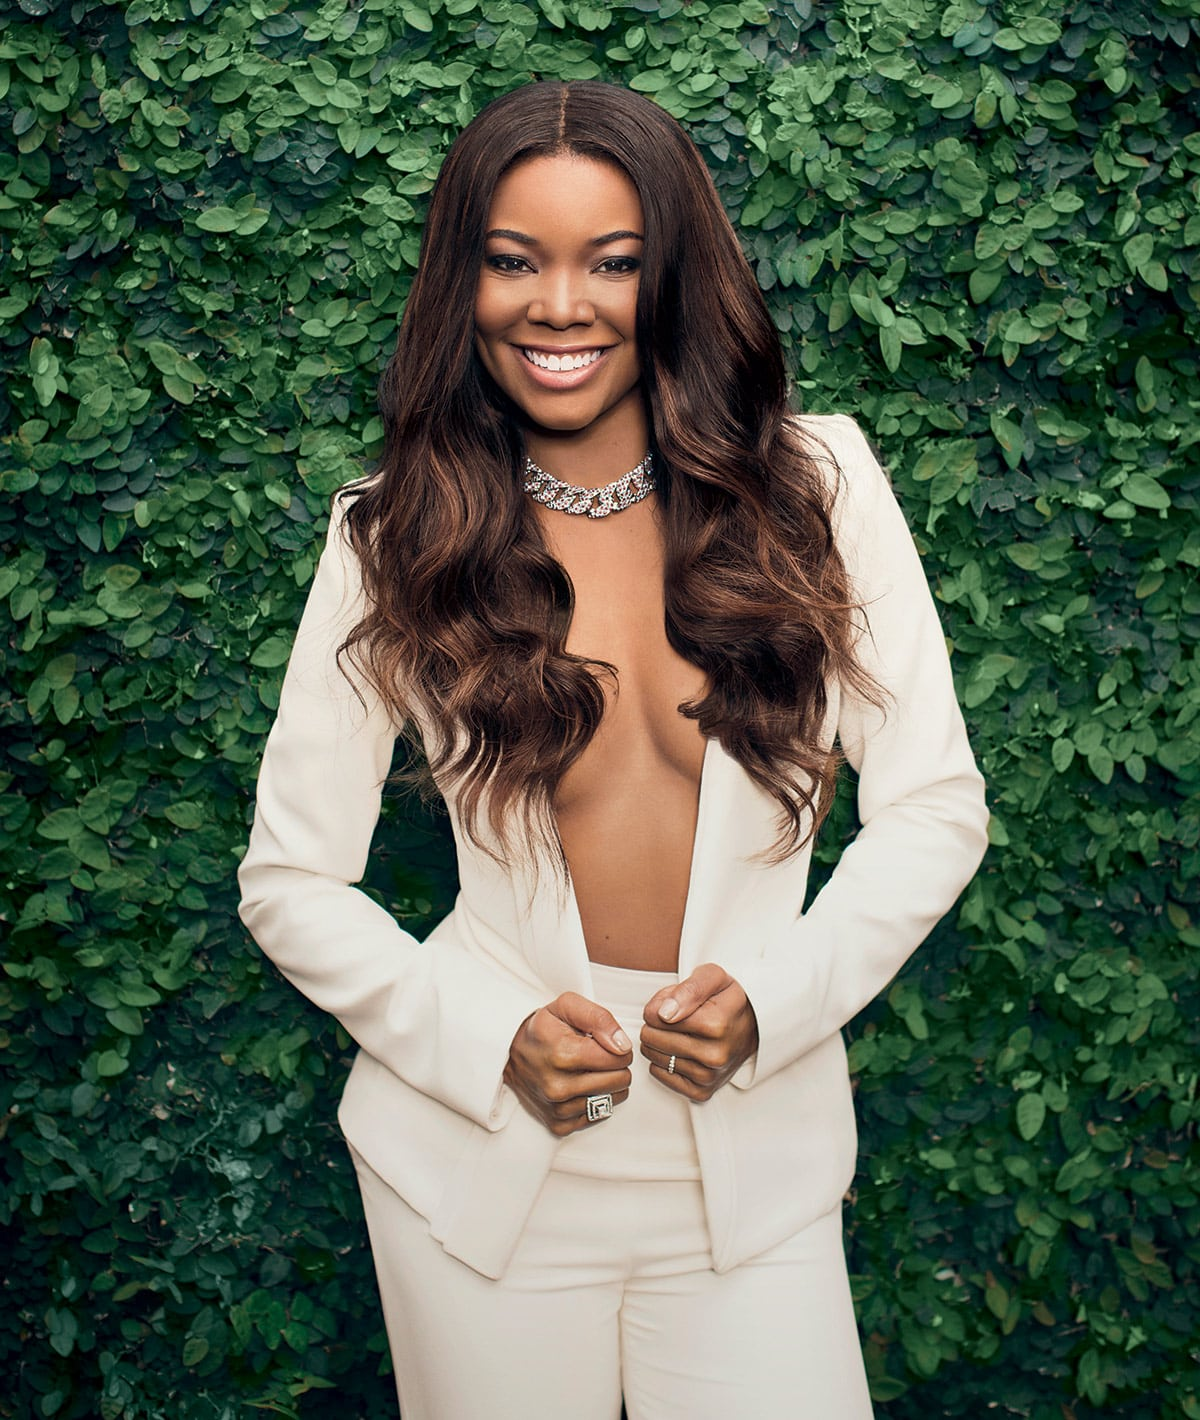 Gabrielle Union awesome pic